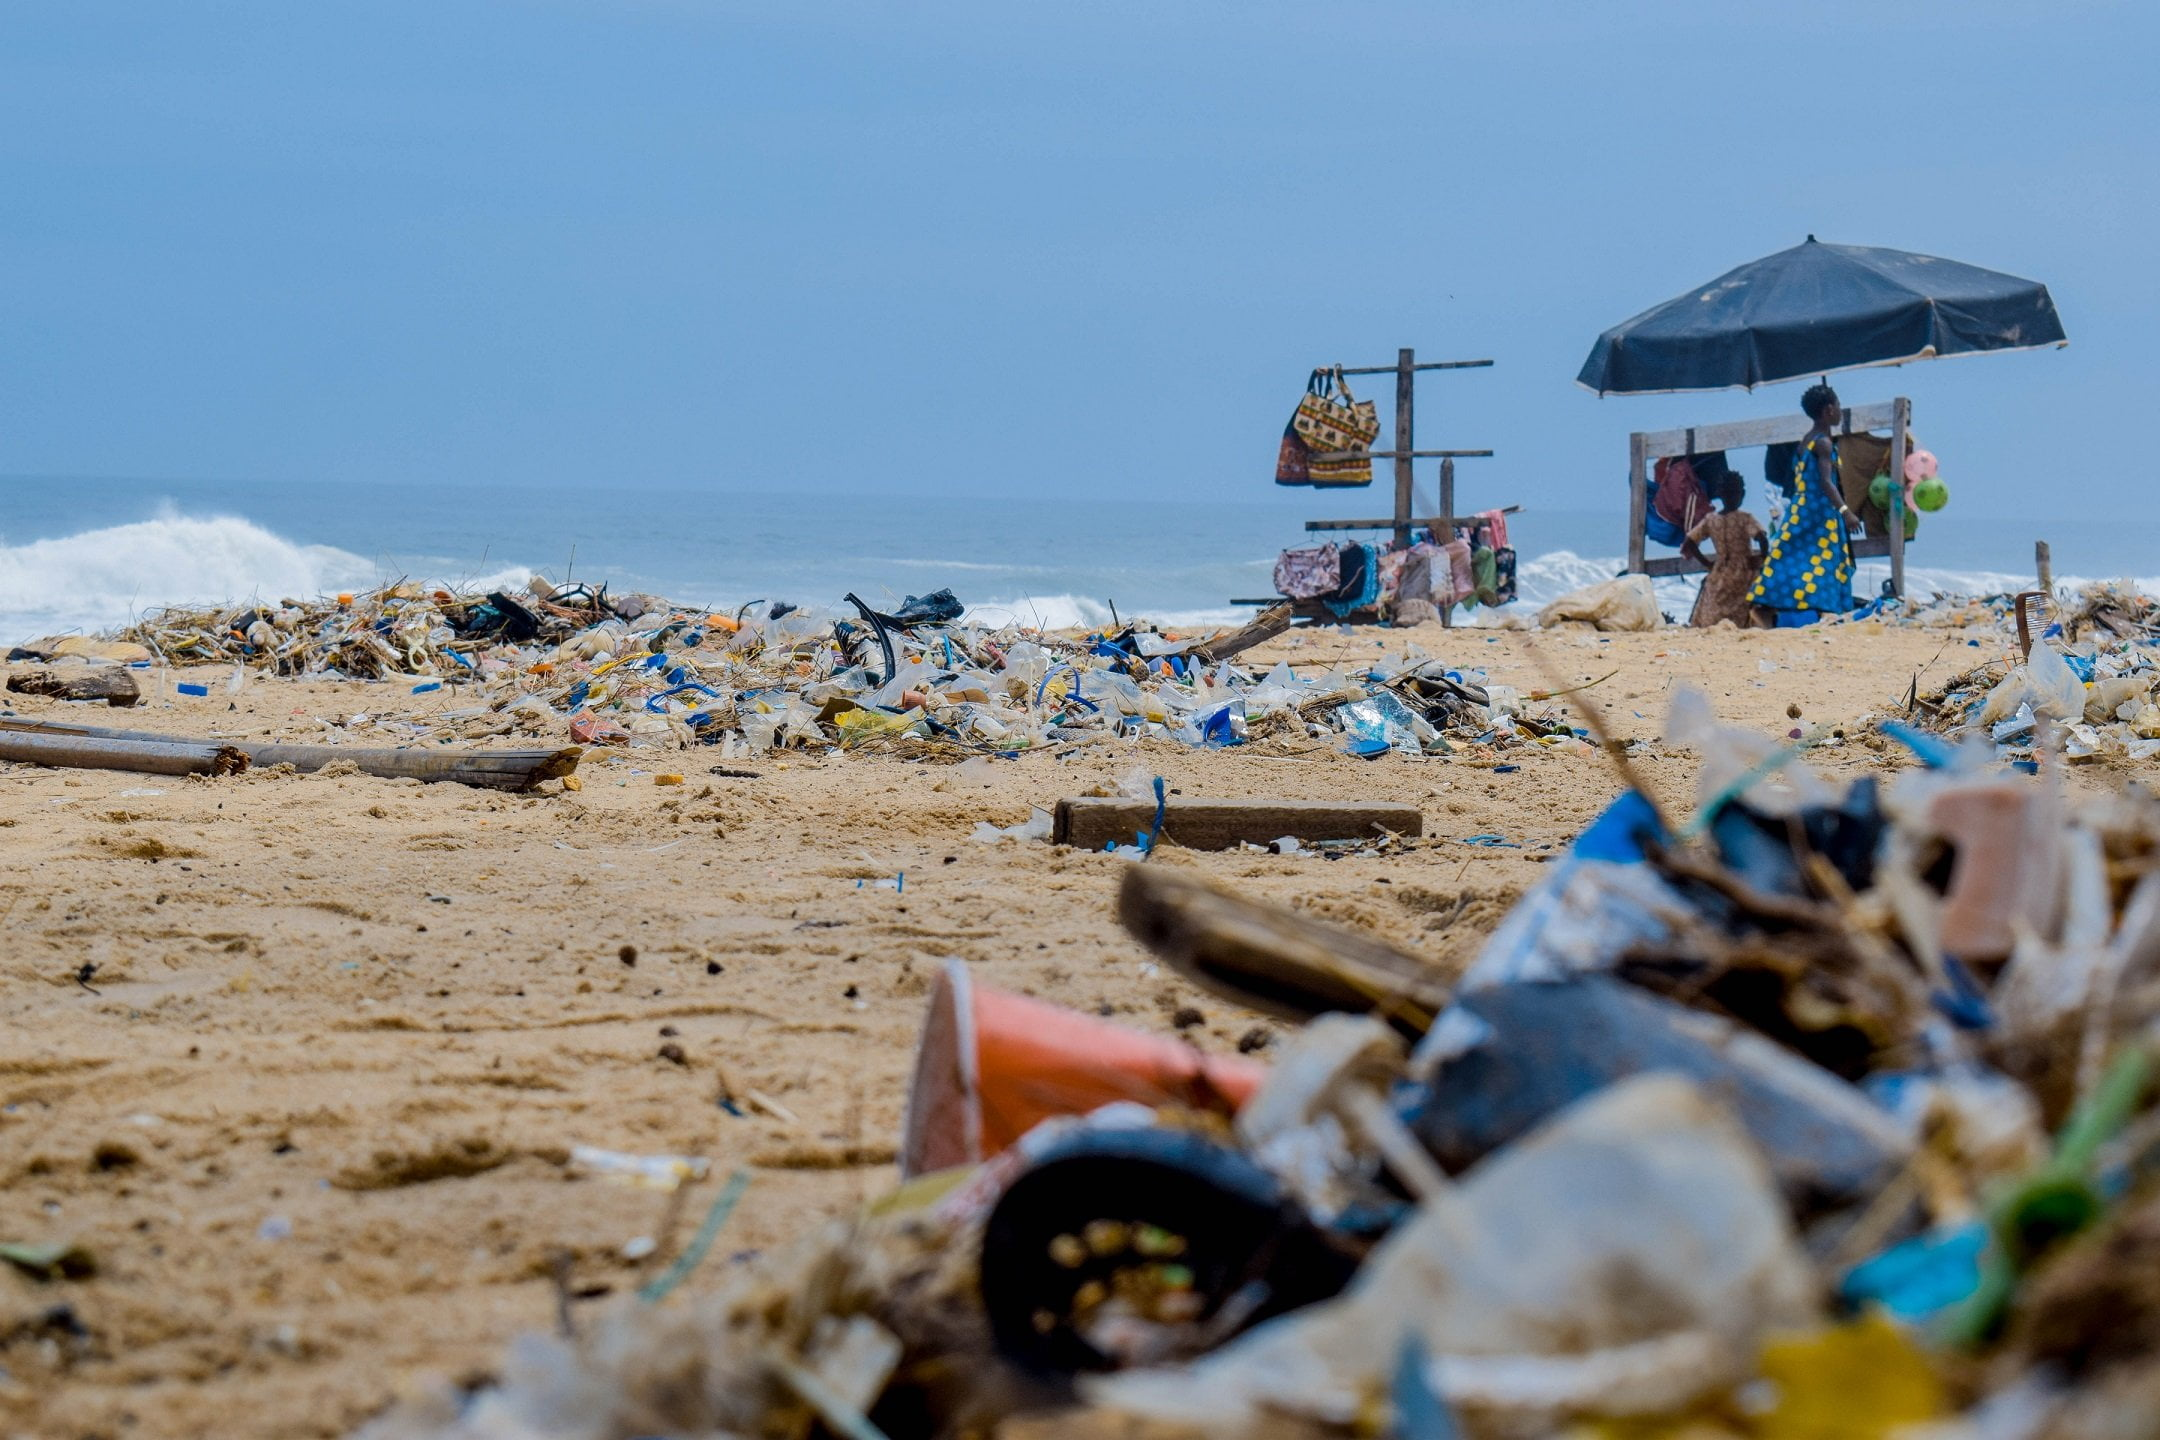 Trash on beach: Oceans are Turning into Landfills